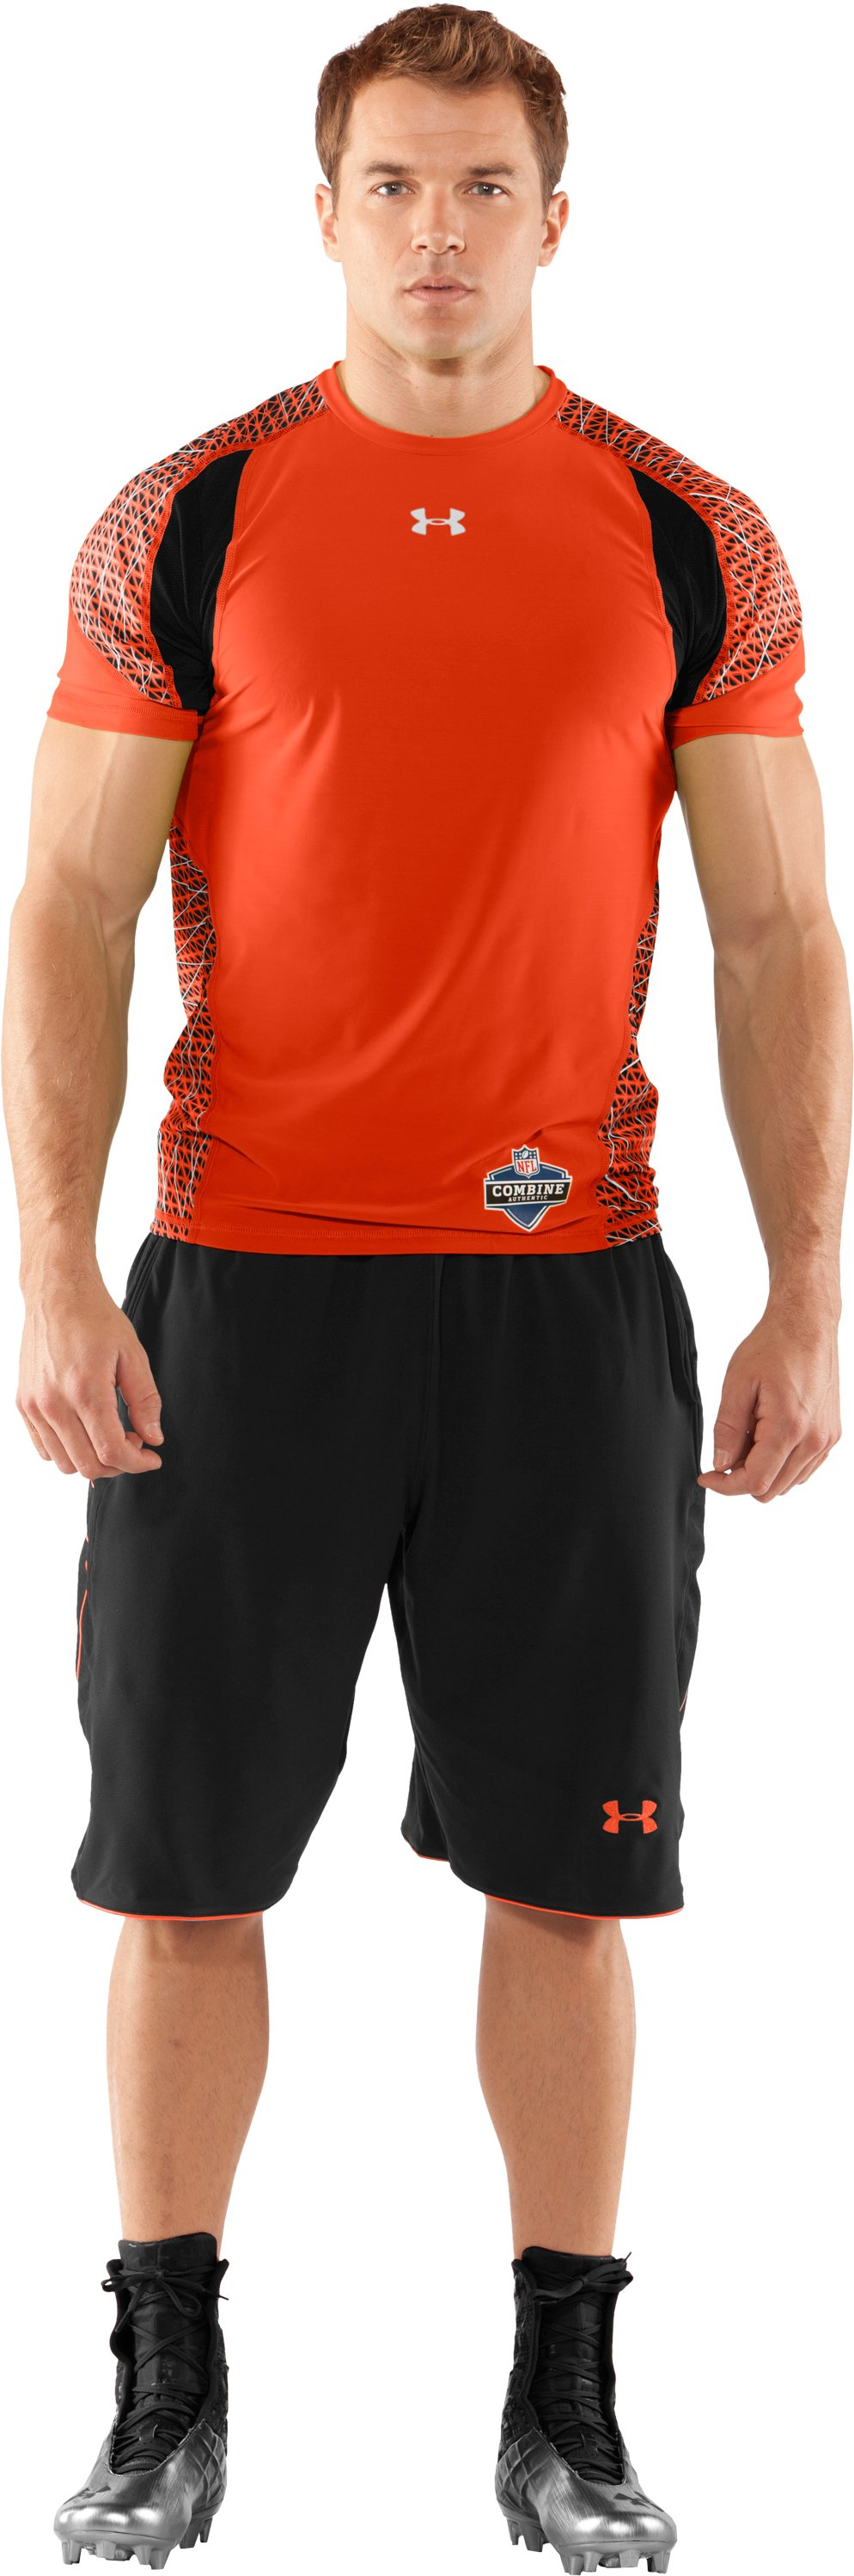 Men's NFL Combine Authentic Warp Speed Fitted Short Sleeve, Explosive